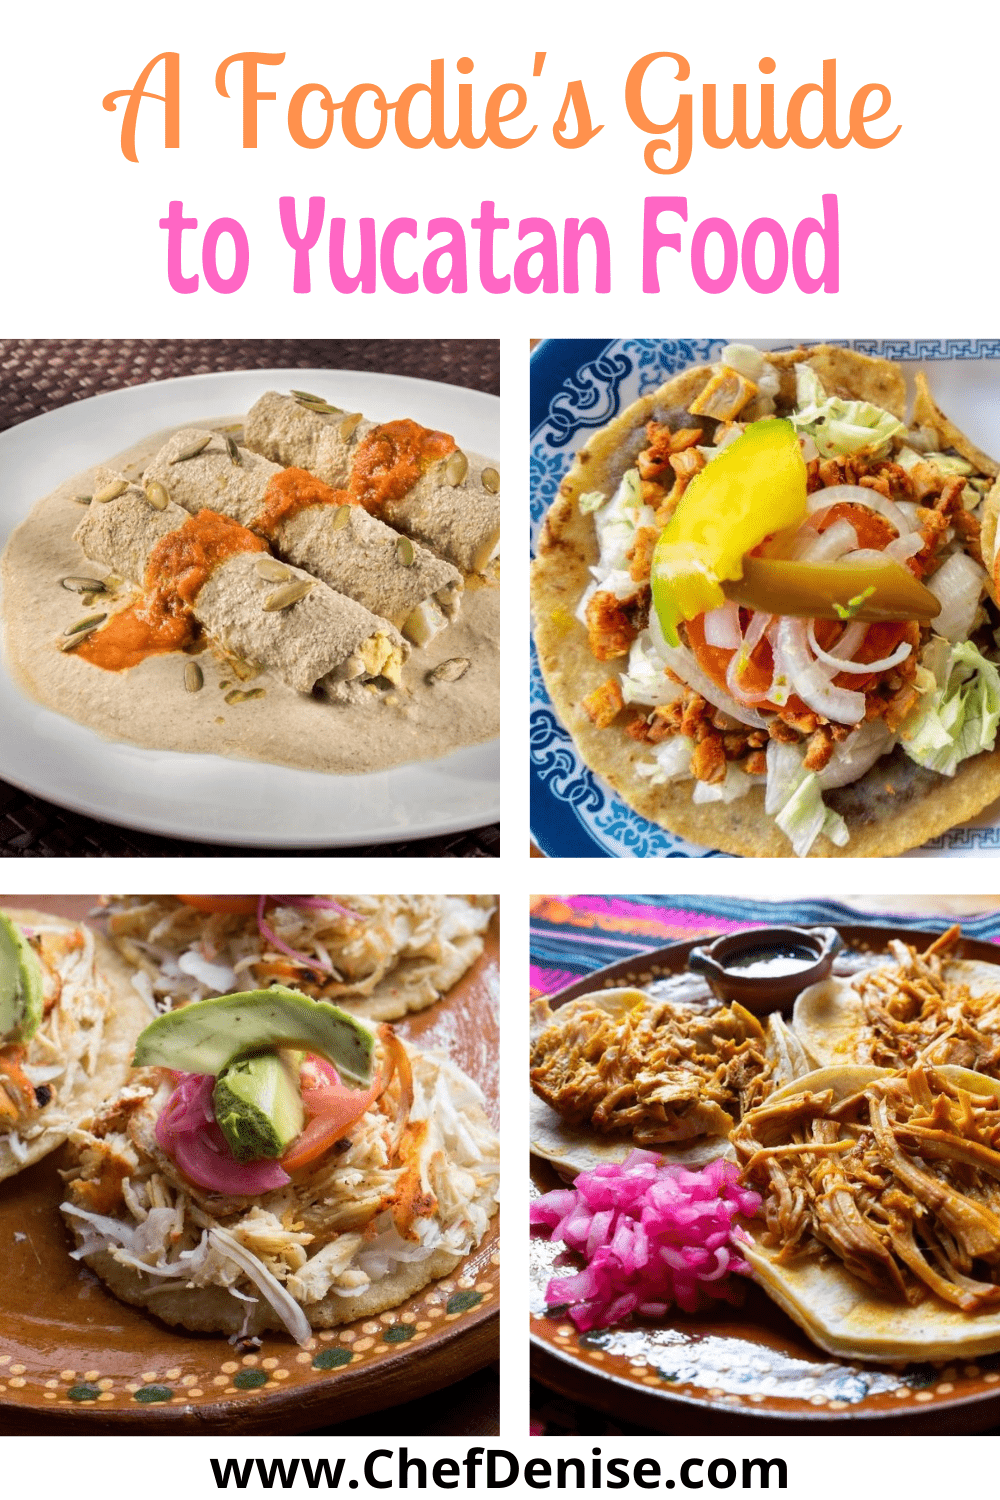 Pin for a Foodie's Guide to Yucatan Foods